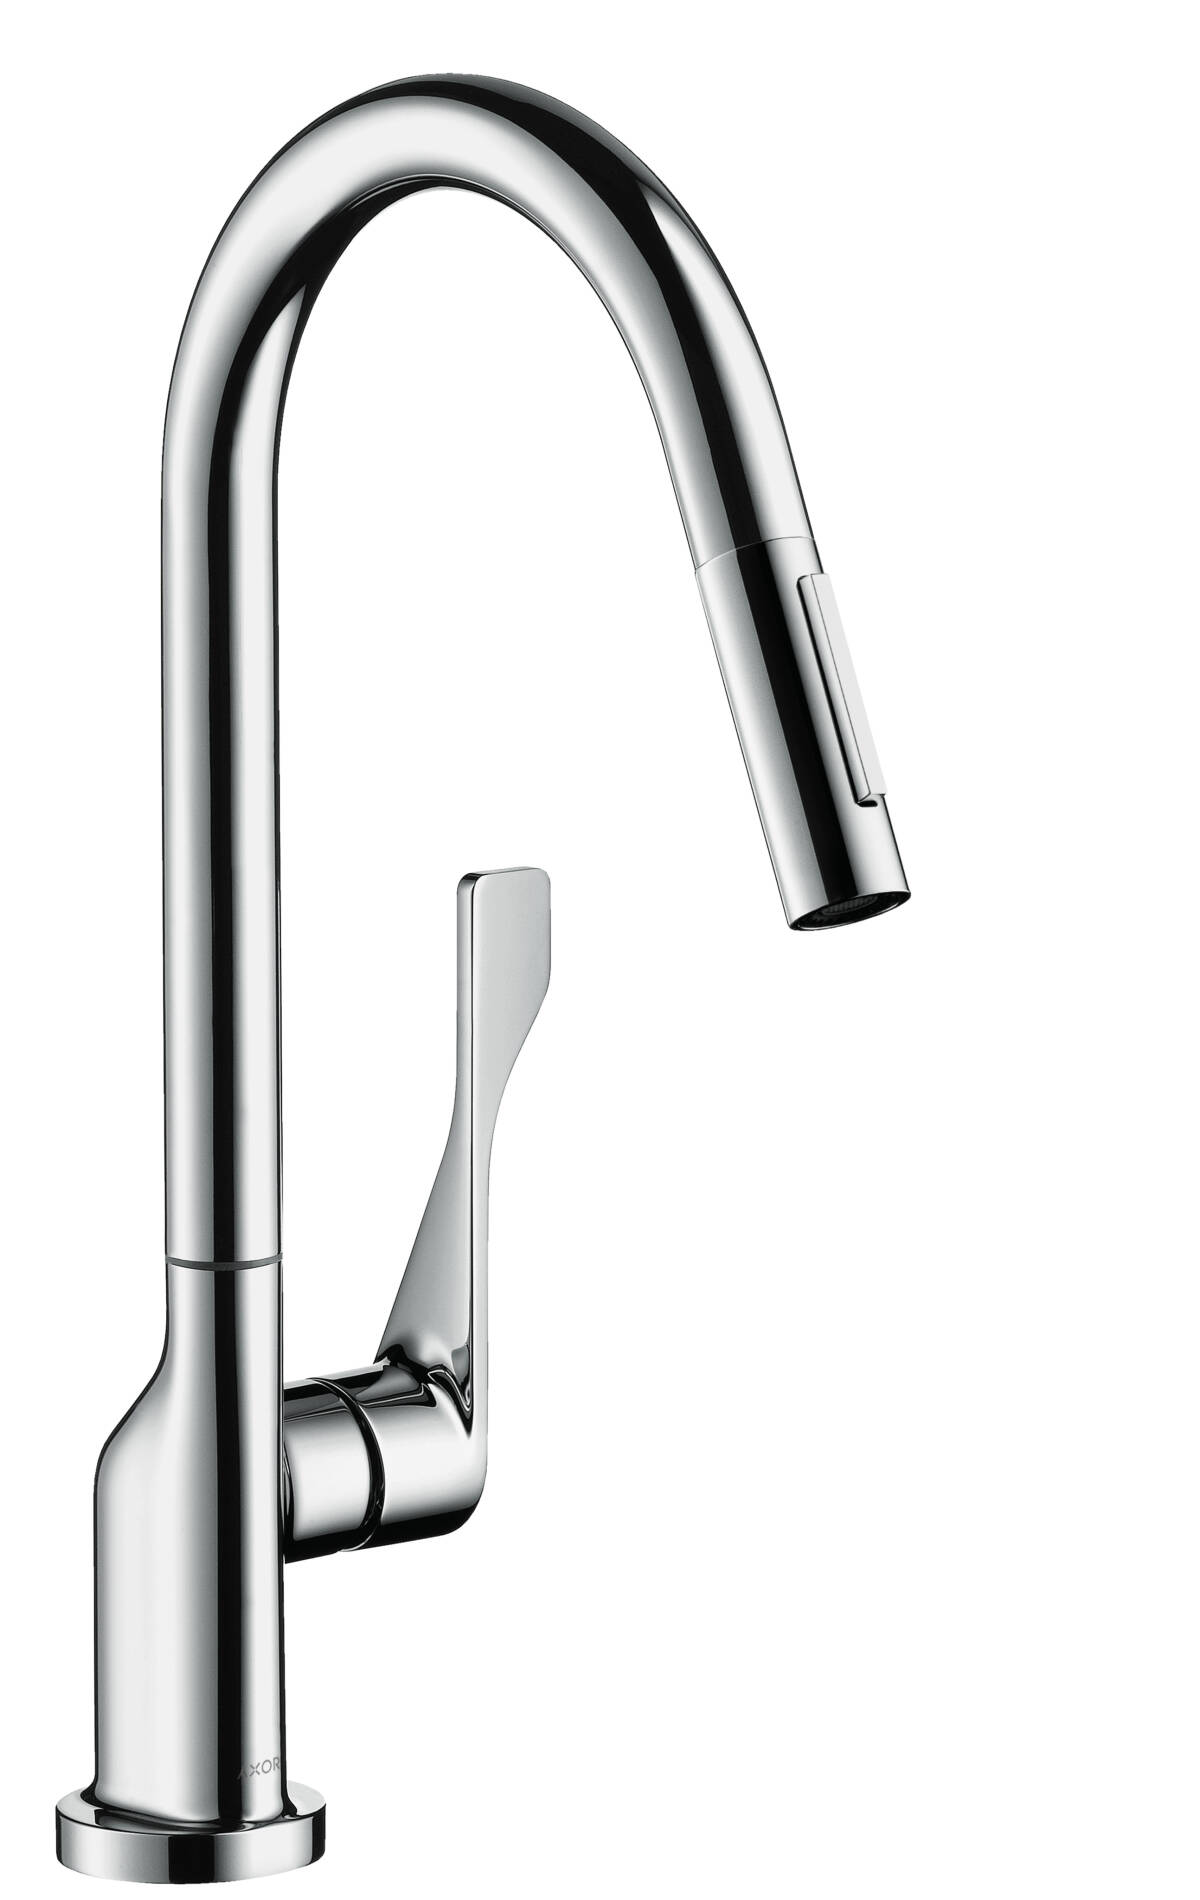 Single lever kitchen mixer 250 with pull-out spray, Chrome, 39835000